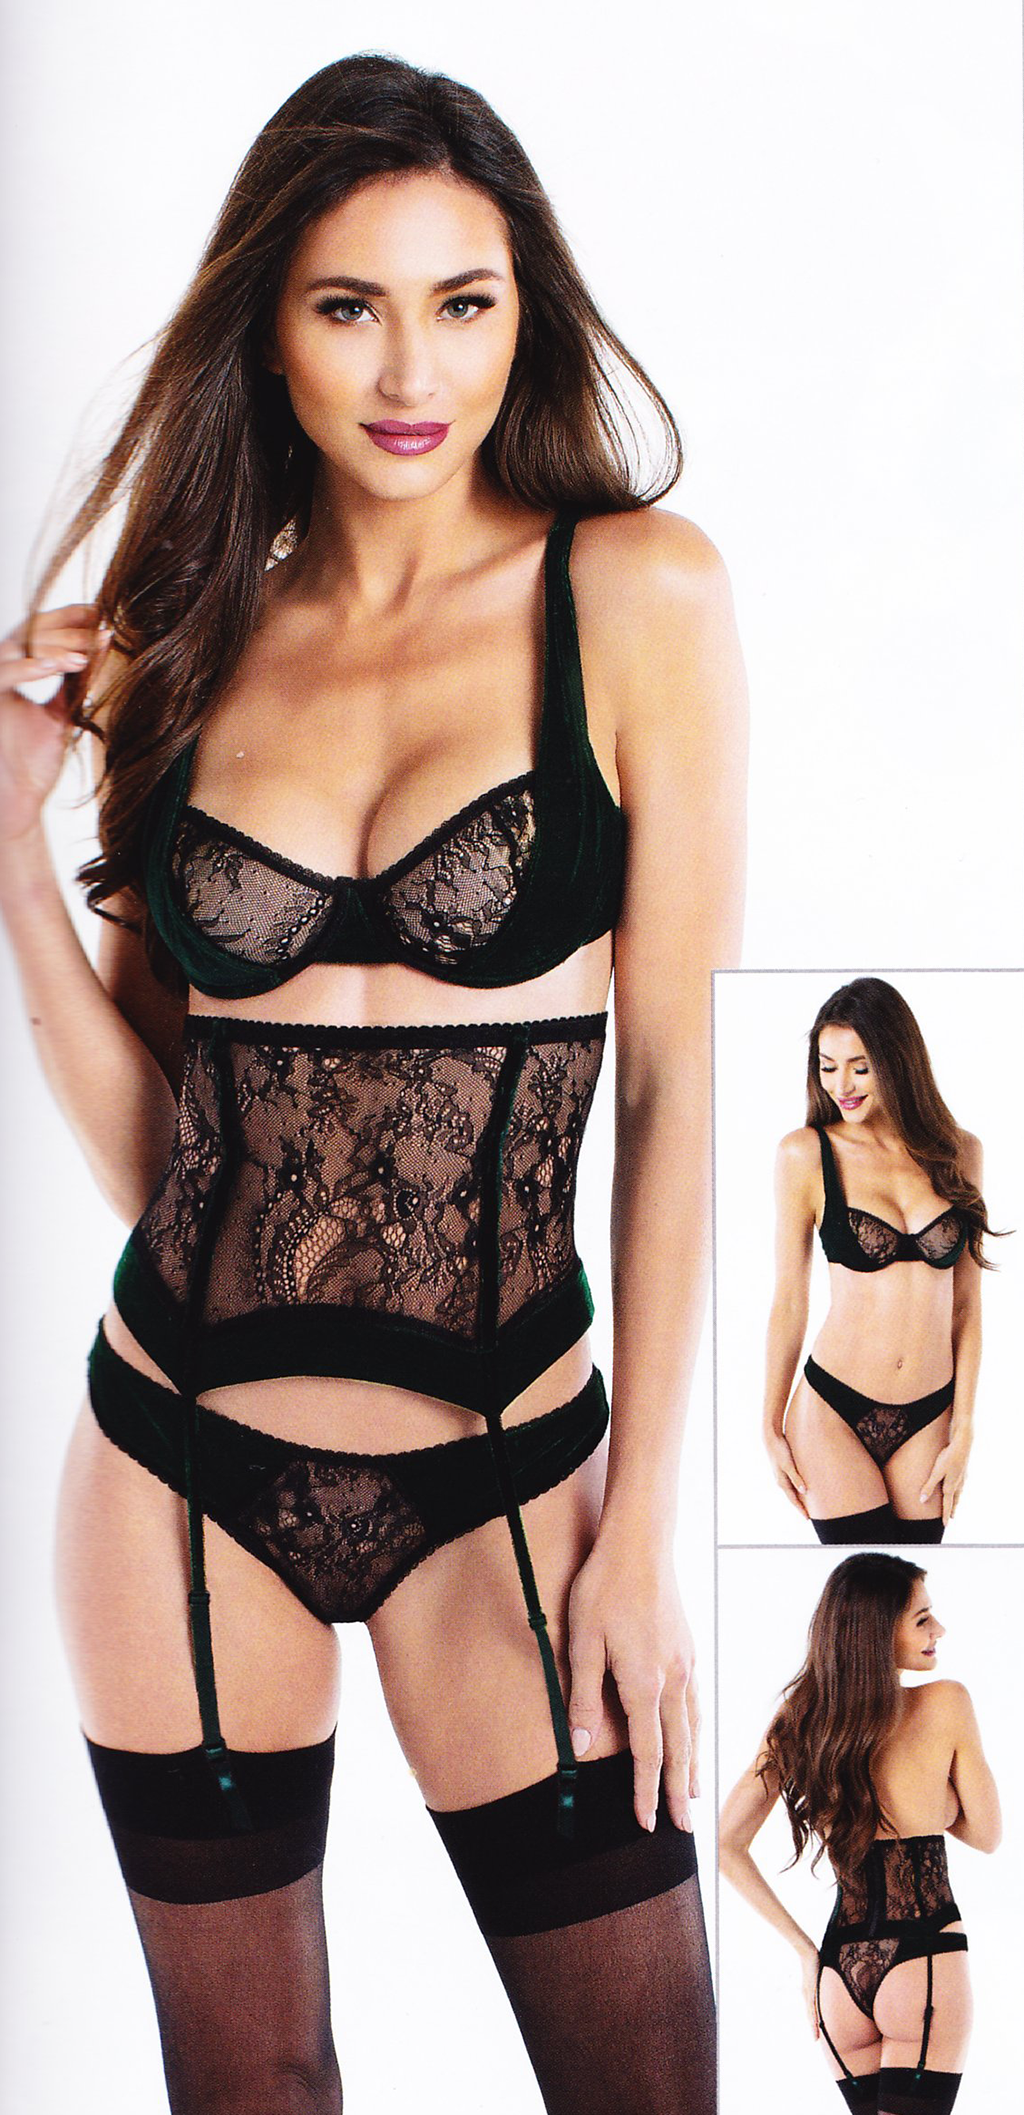 Two-Piece Lace Lingerie Set - [collection] - Honeybunnies.com